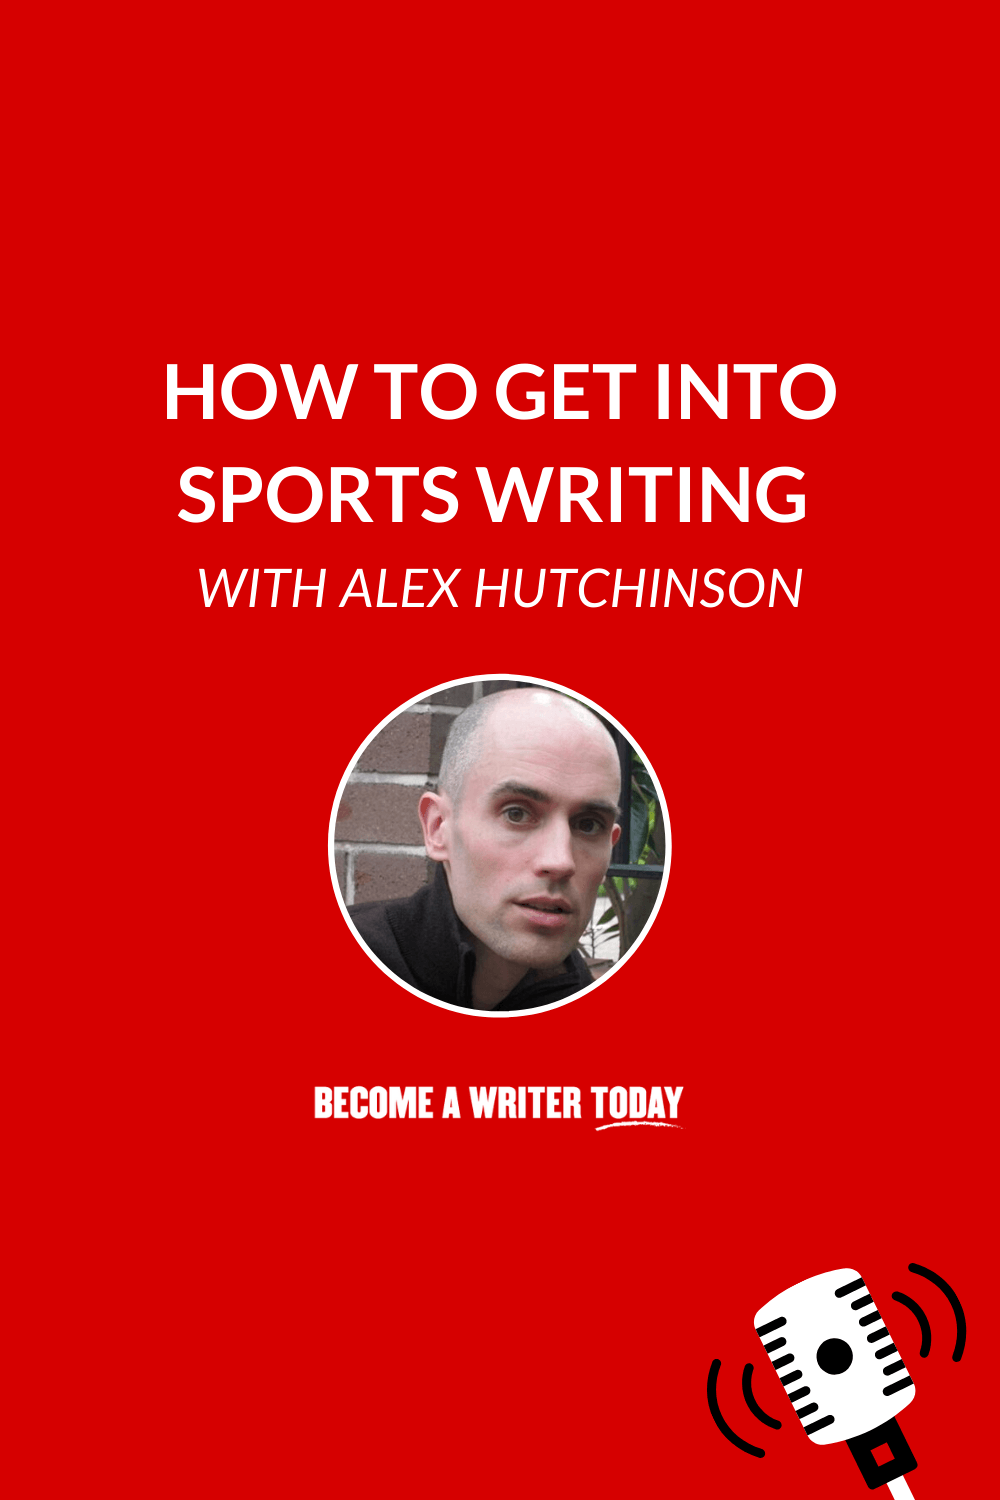 How To Get Into Sports Writing and the Limits of Human Performance with Alex Hutchinson